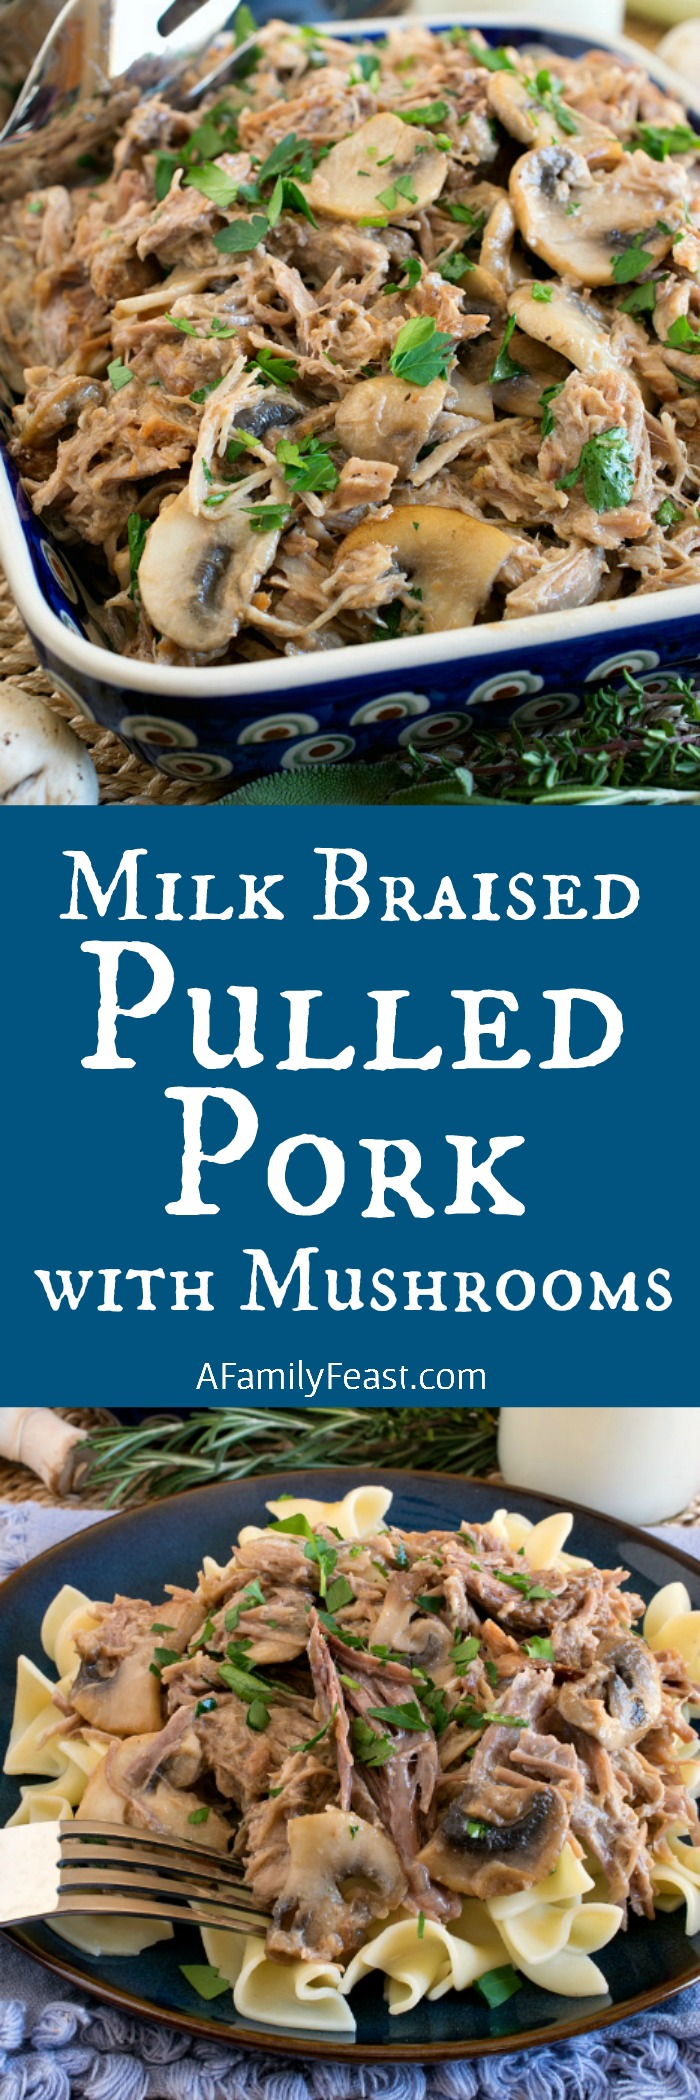 Milk Braised Pulled Pork with Mushrooms - Tender and delicious pulled pork in an incredible milk-based sauce.